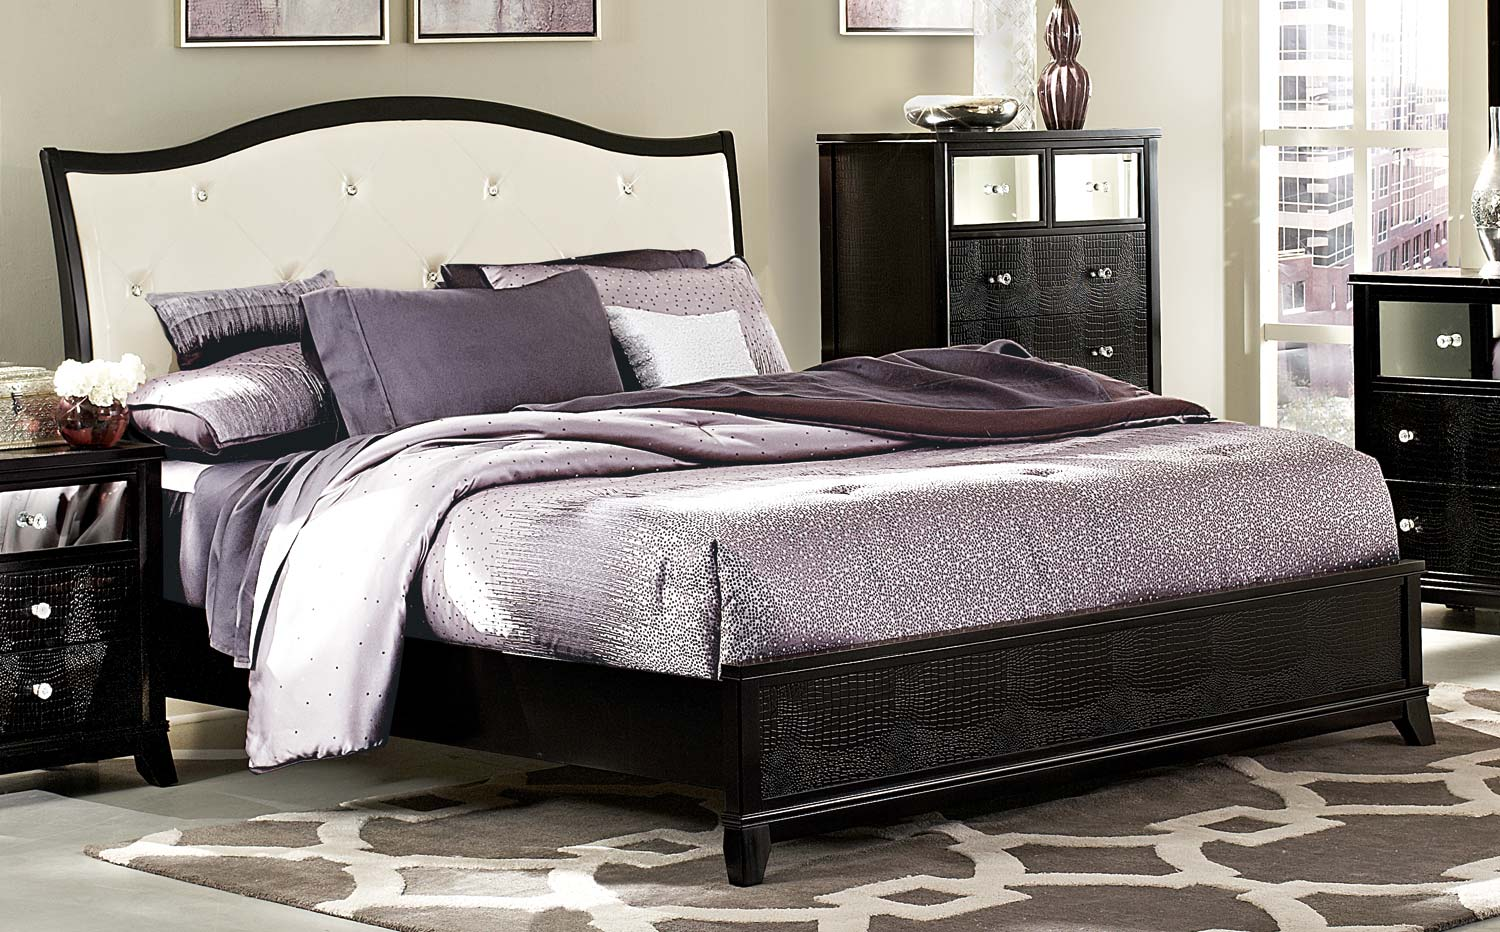 Homelegance Jacqueline Upholstered Bed - Faux Alligator/Black